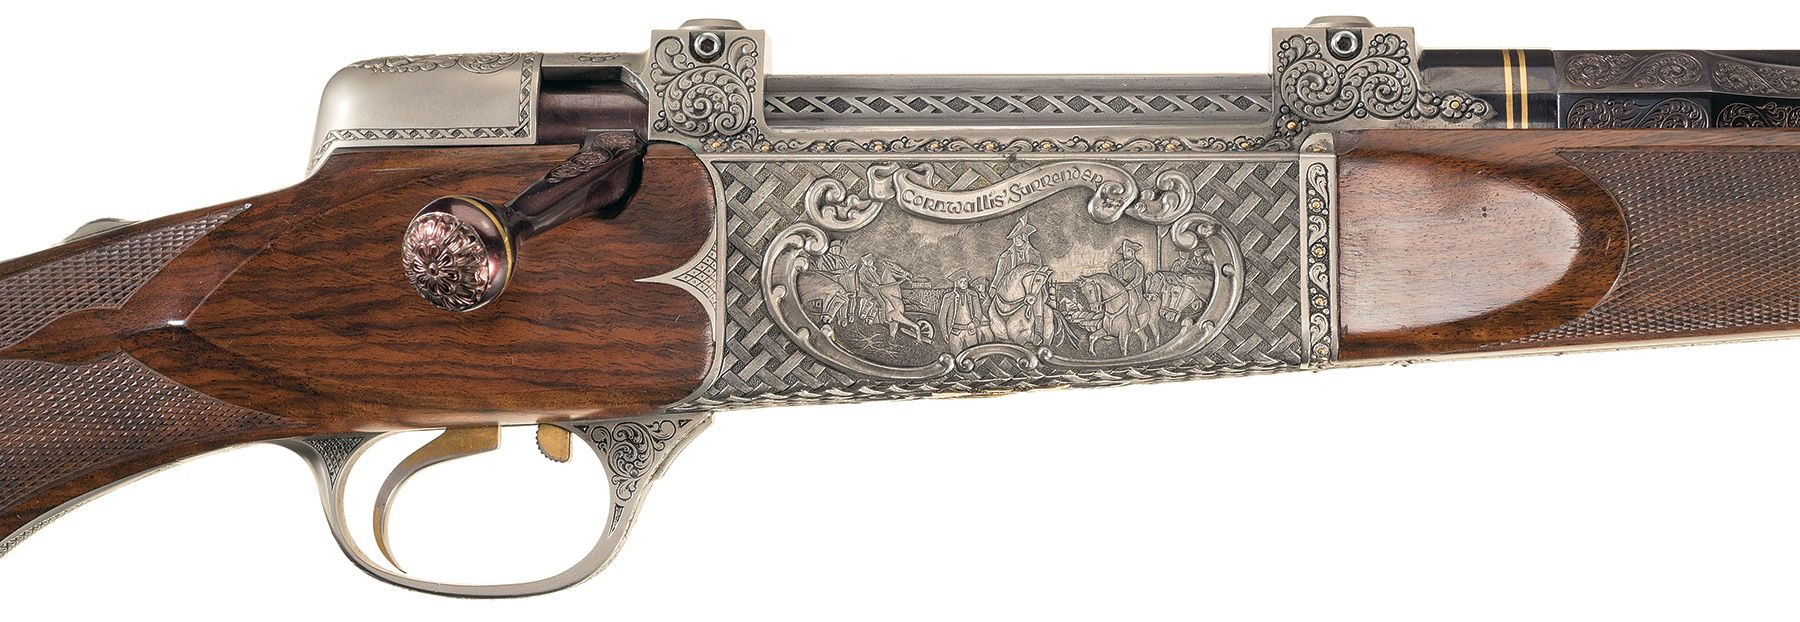 Haskins Bicentennial rifle Surrender of General Cornwallis